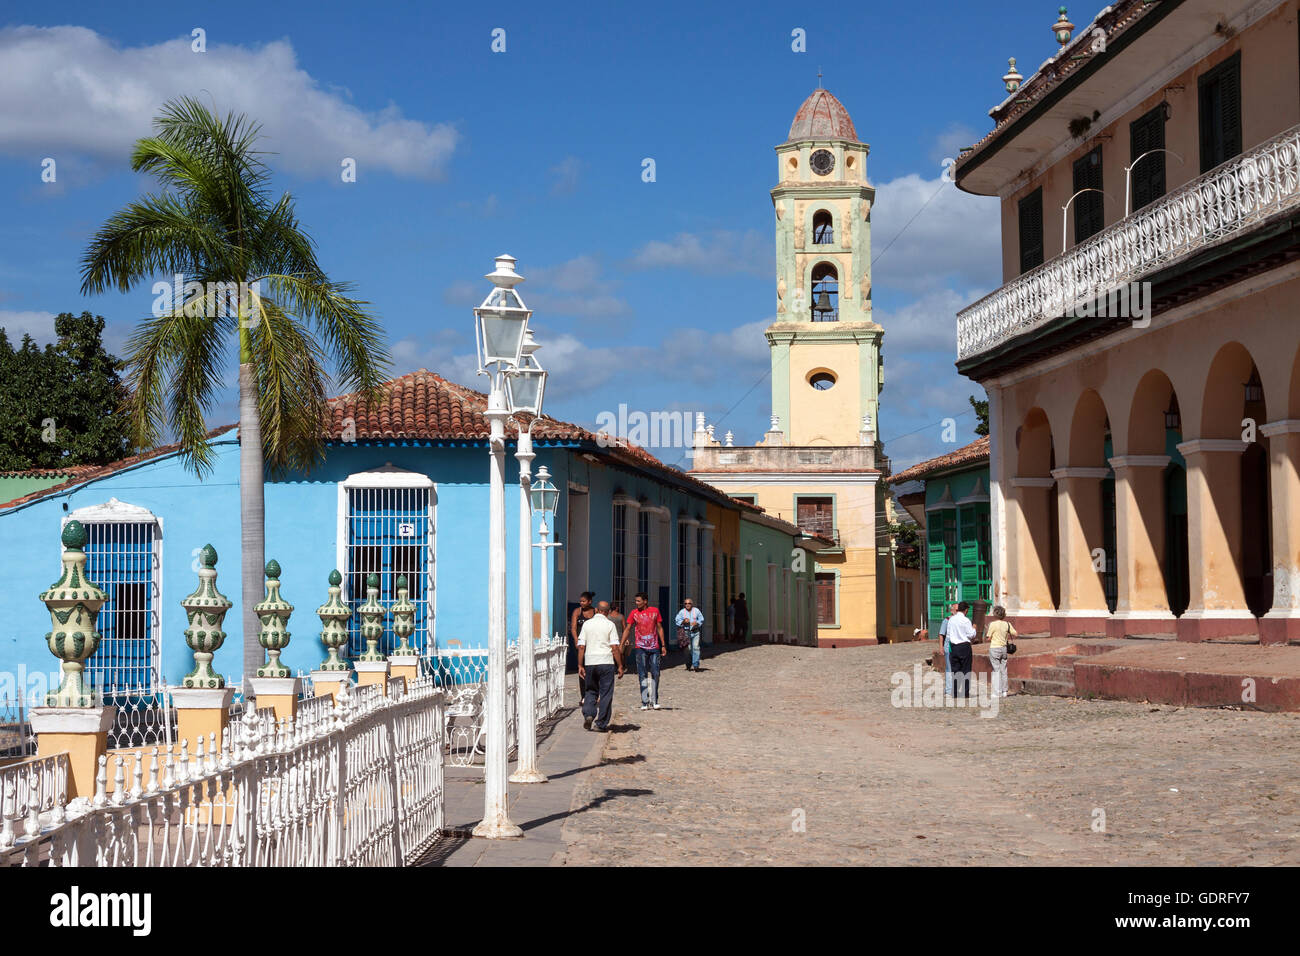 Street and colorful houses, to the right Museo Romantico at the Palacio Brunet, Iglesia Parroquial de la Santisima - Stock Image